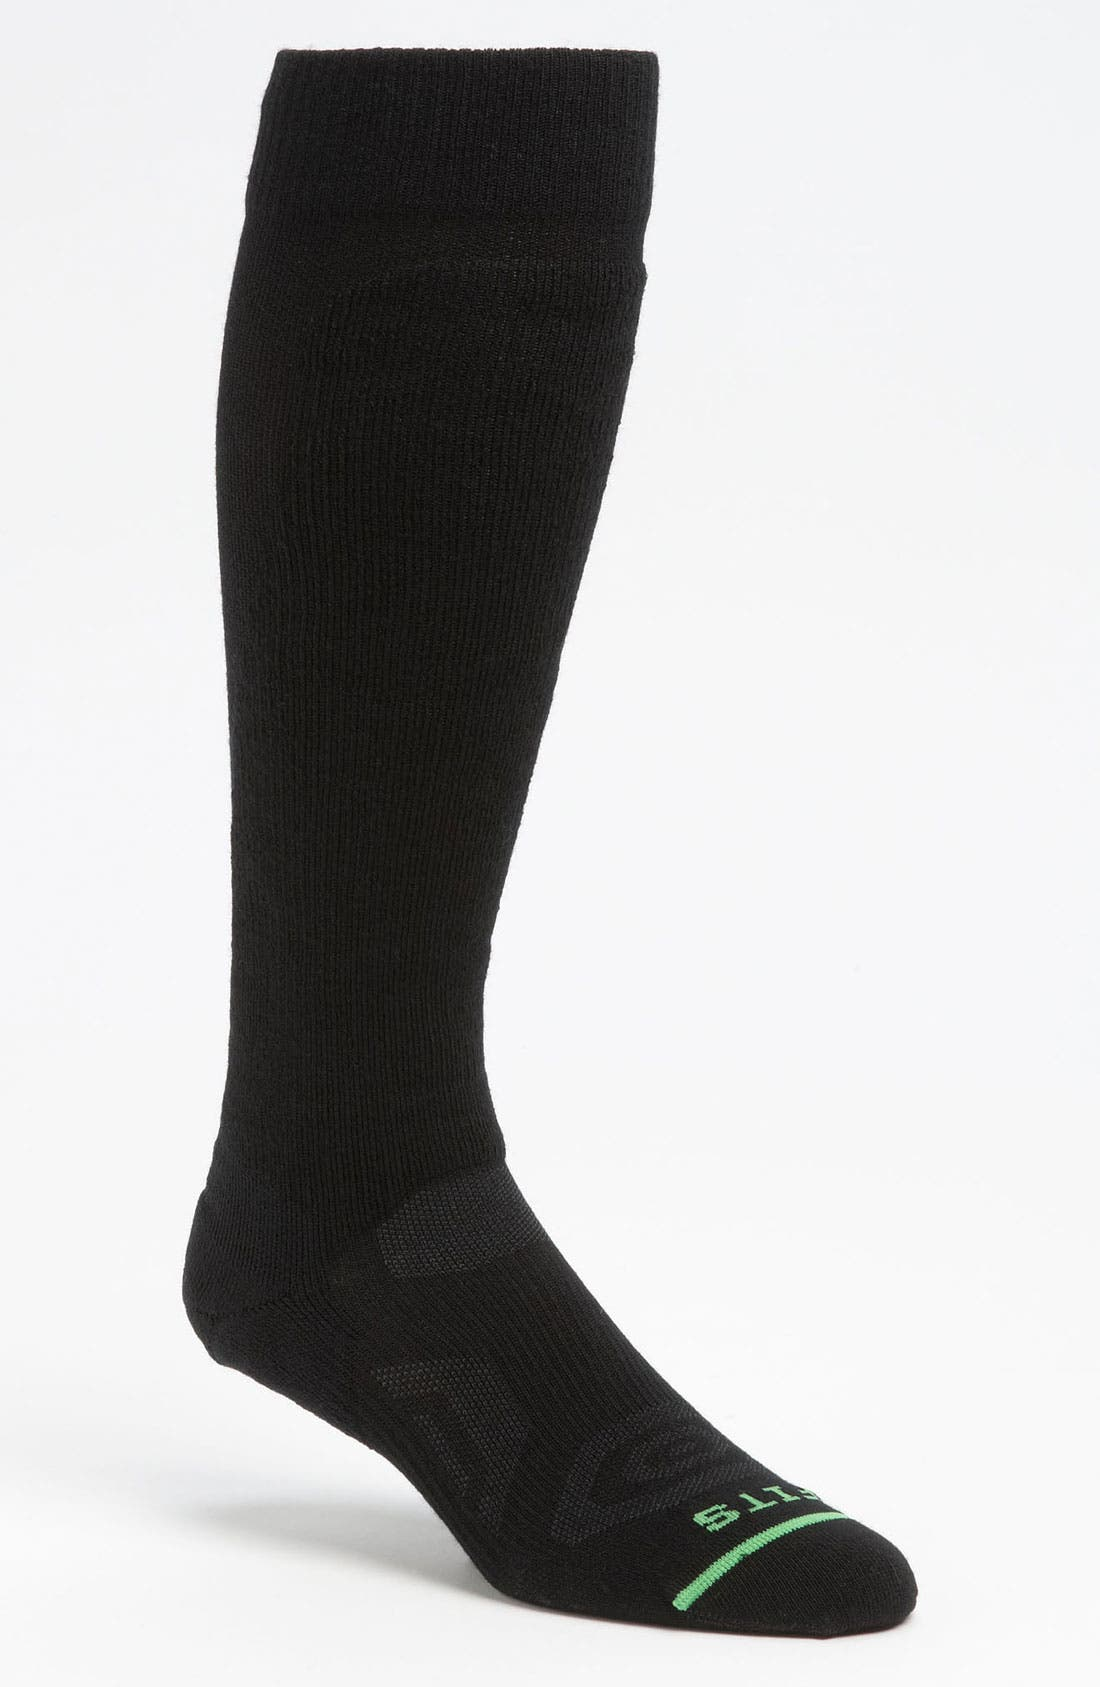 Main Image - FITS Sock Co. 'Pro Ski' Over the Calf Socks (Online Exclusive)